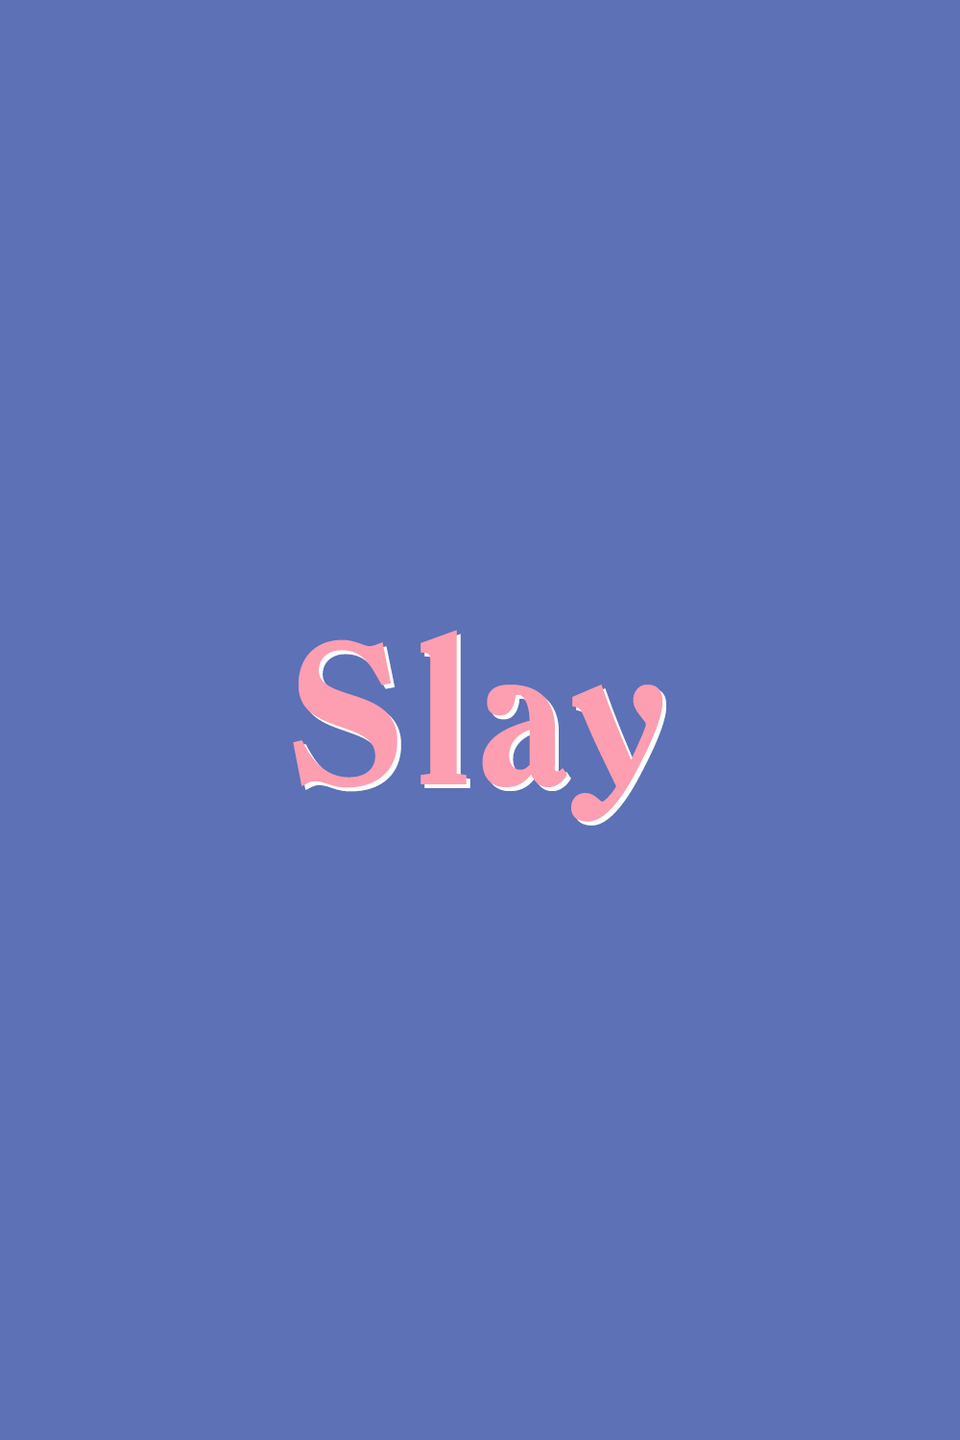 "<p>Slay is to do something exceptionally well. While Merriam-Webster defines it as, ""<a href=""https://www.merriam-webster.com/dictionary/slay"" rel=""nofollow noopener"" target=""_blank"" data-ylk=""slk:to kill violently"" class=""link rapid-noclick-resp"">to kill violently</a>,"" and traces its etymology to the 12th century, the term as a form of slang picked up steam in—surprise—'80s and '90s <a href=""https://www.oprahdaily.com/life/a23601818/queer-cultural-appropriation-definition/"" rel=""nofollow noopener"" target=""_blank"" data-ylk=""slk:ball culture"" class=""link rapid-noclick-resp"">ball culture</a>, where LGBTQ people of color used it to compliment someone's outfit or demeanor. </p>"